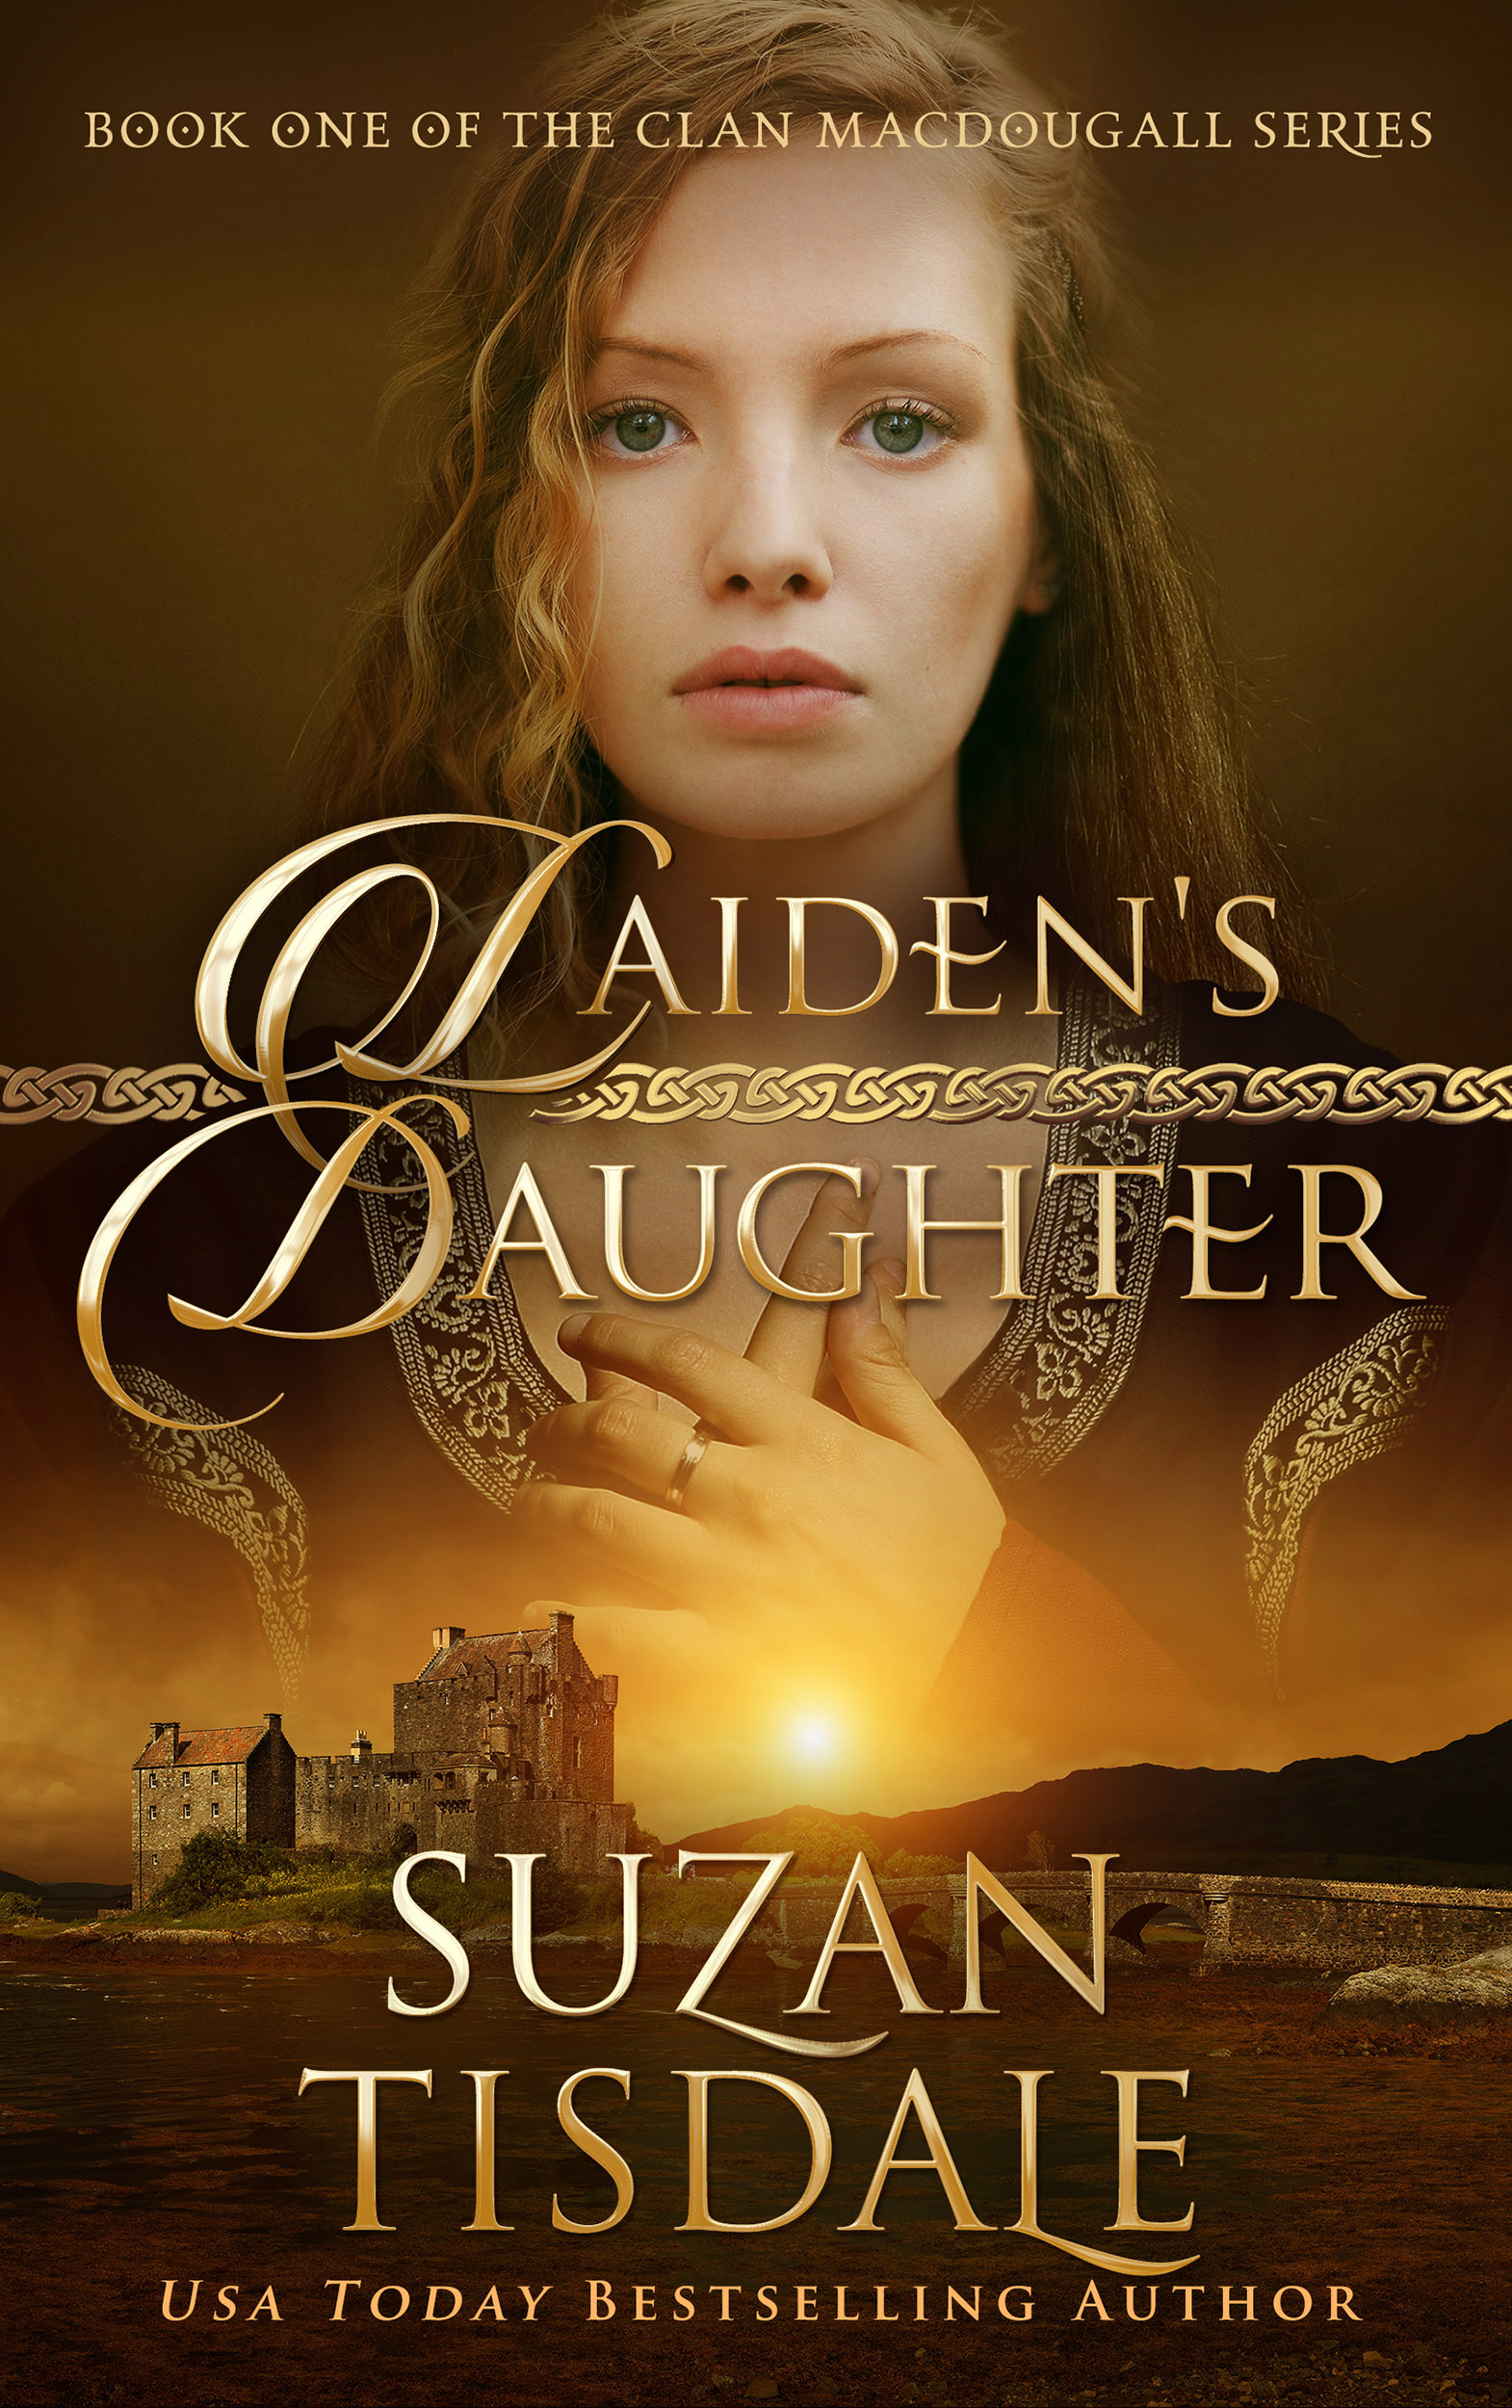 Laiden's Daughter - Ebook Small